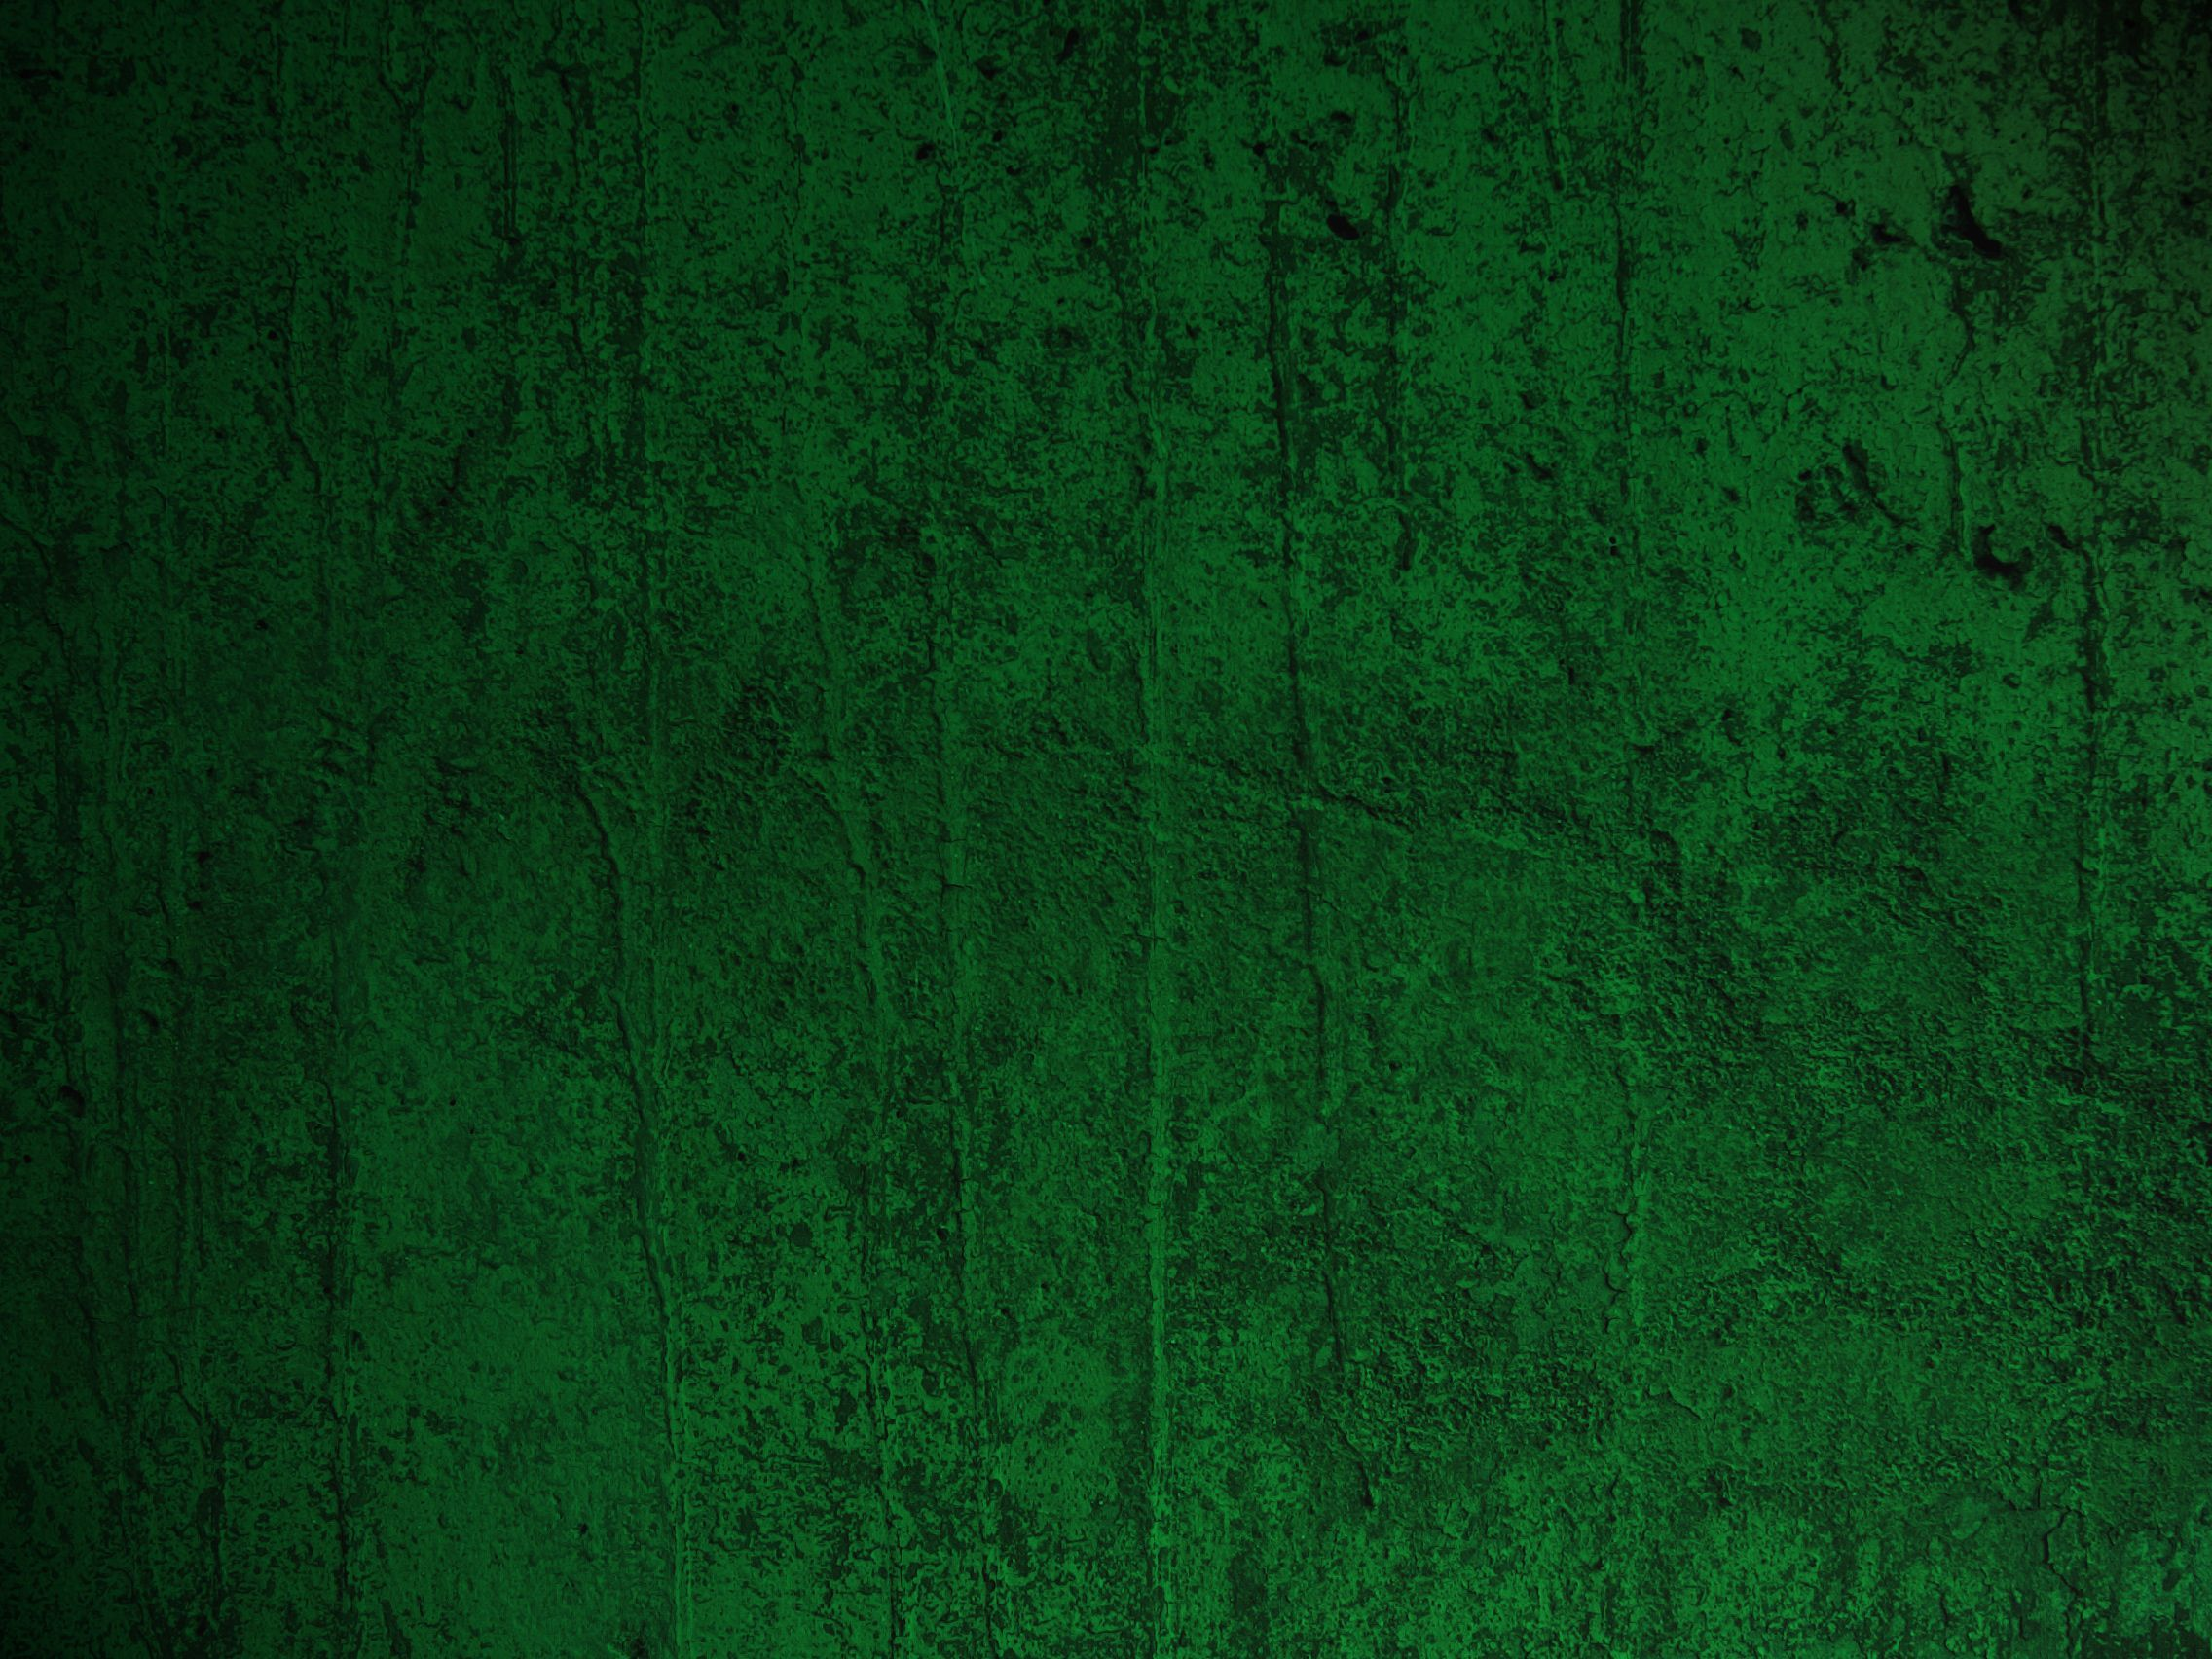 2272x1704 Olive Green Design Backgrounds 065 Dekstop HD Wallpapers wfz | alist ...